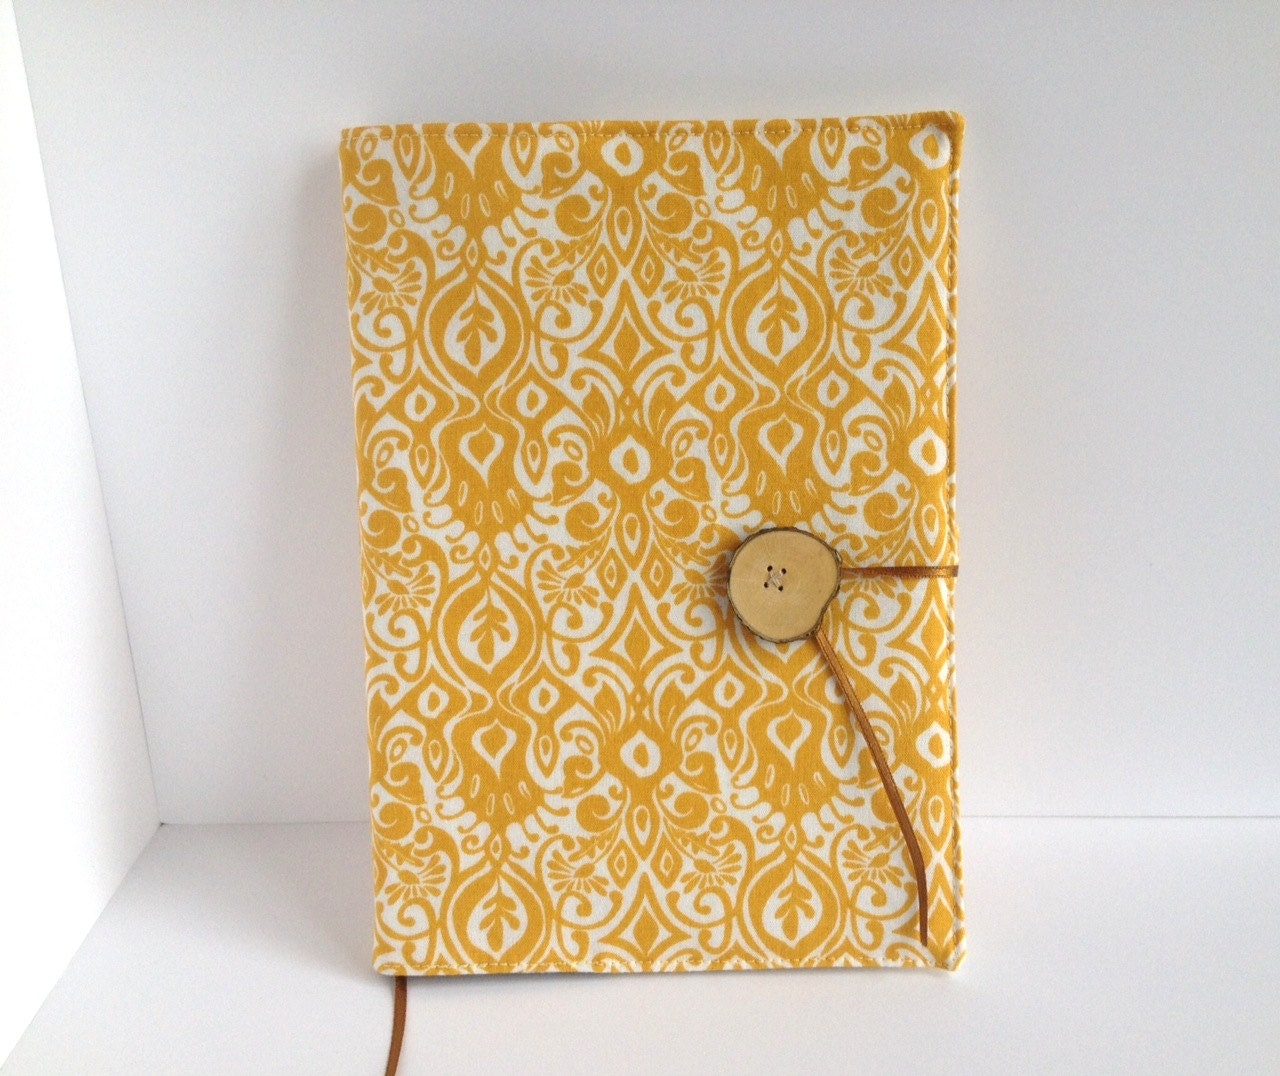 Book Cover Material Uk : Fabric covered notebook reusable book cover made by